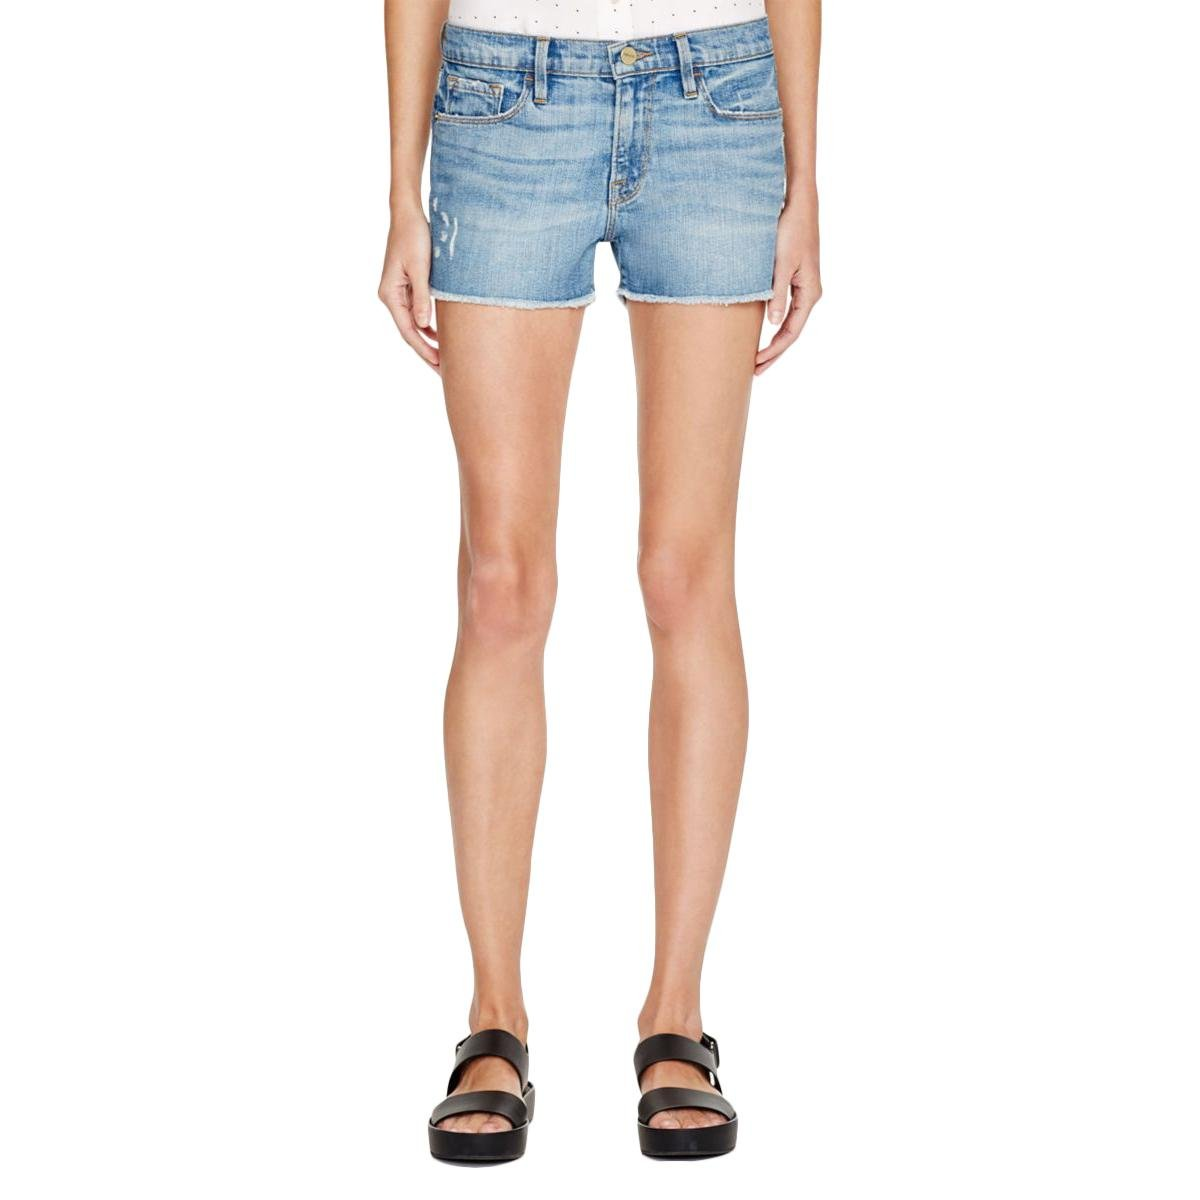 Frame Denim Womens Cut Off Distressed Cutoff Shorts Blue 27